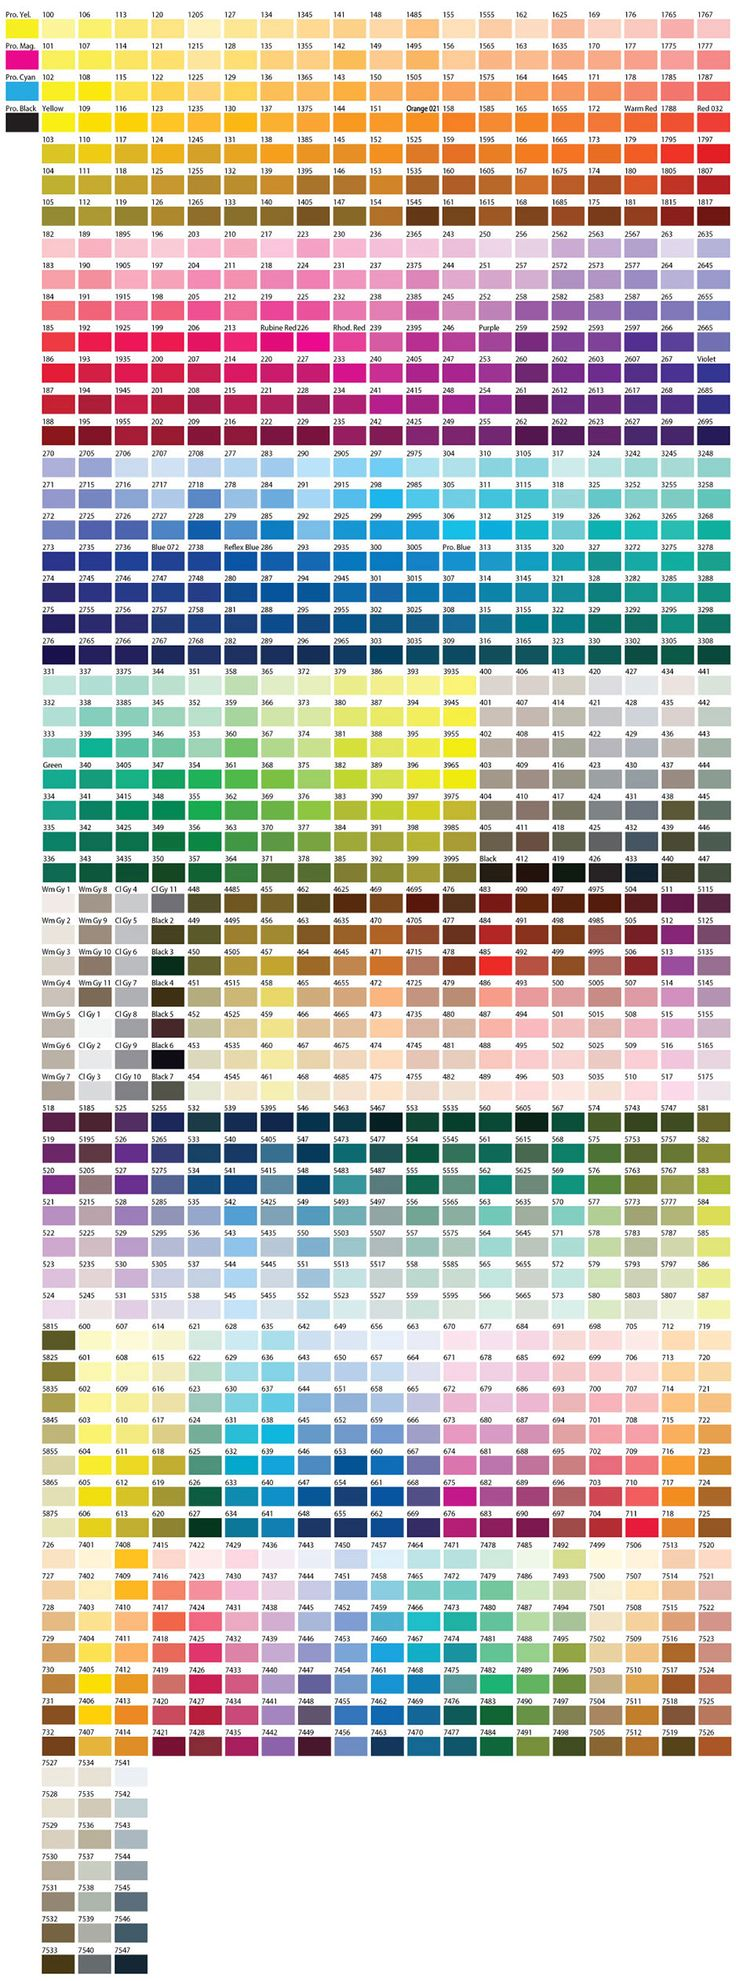 Best 25 Pantone color chart ideas on Pinterest Pantone chart